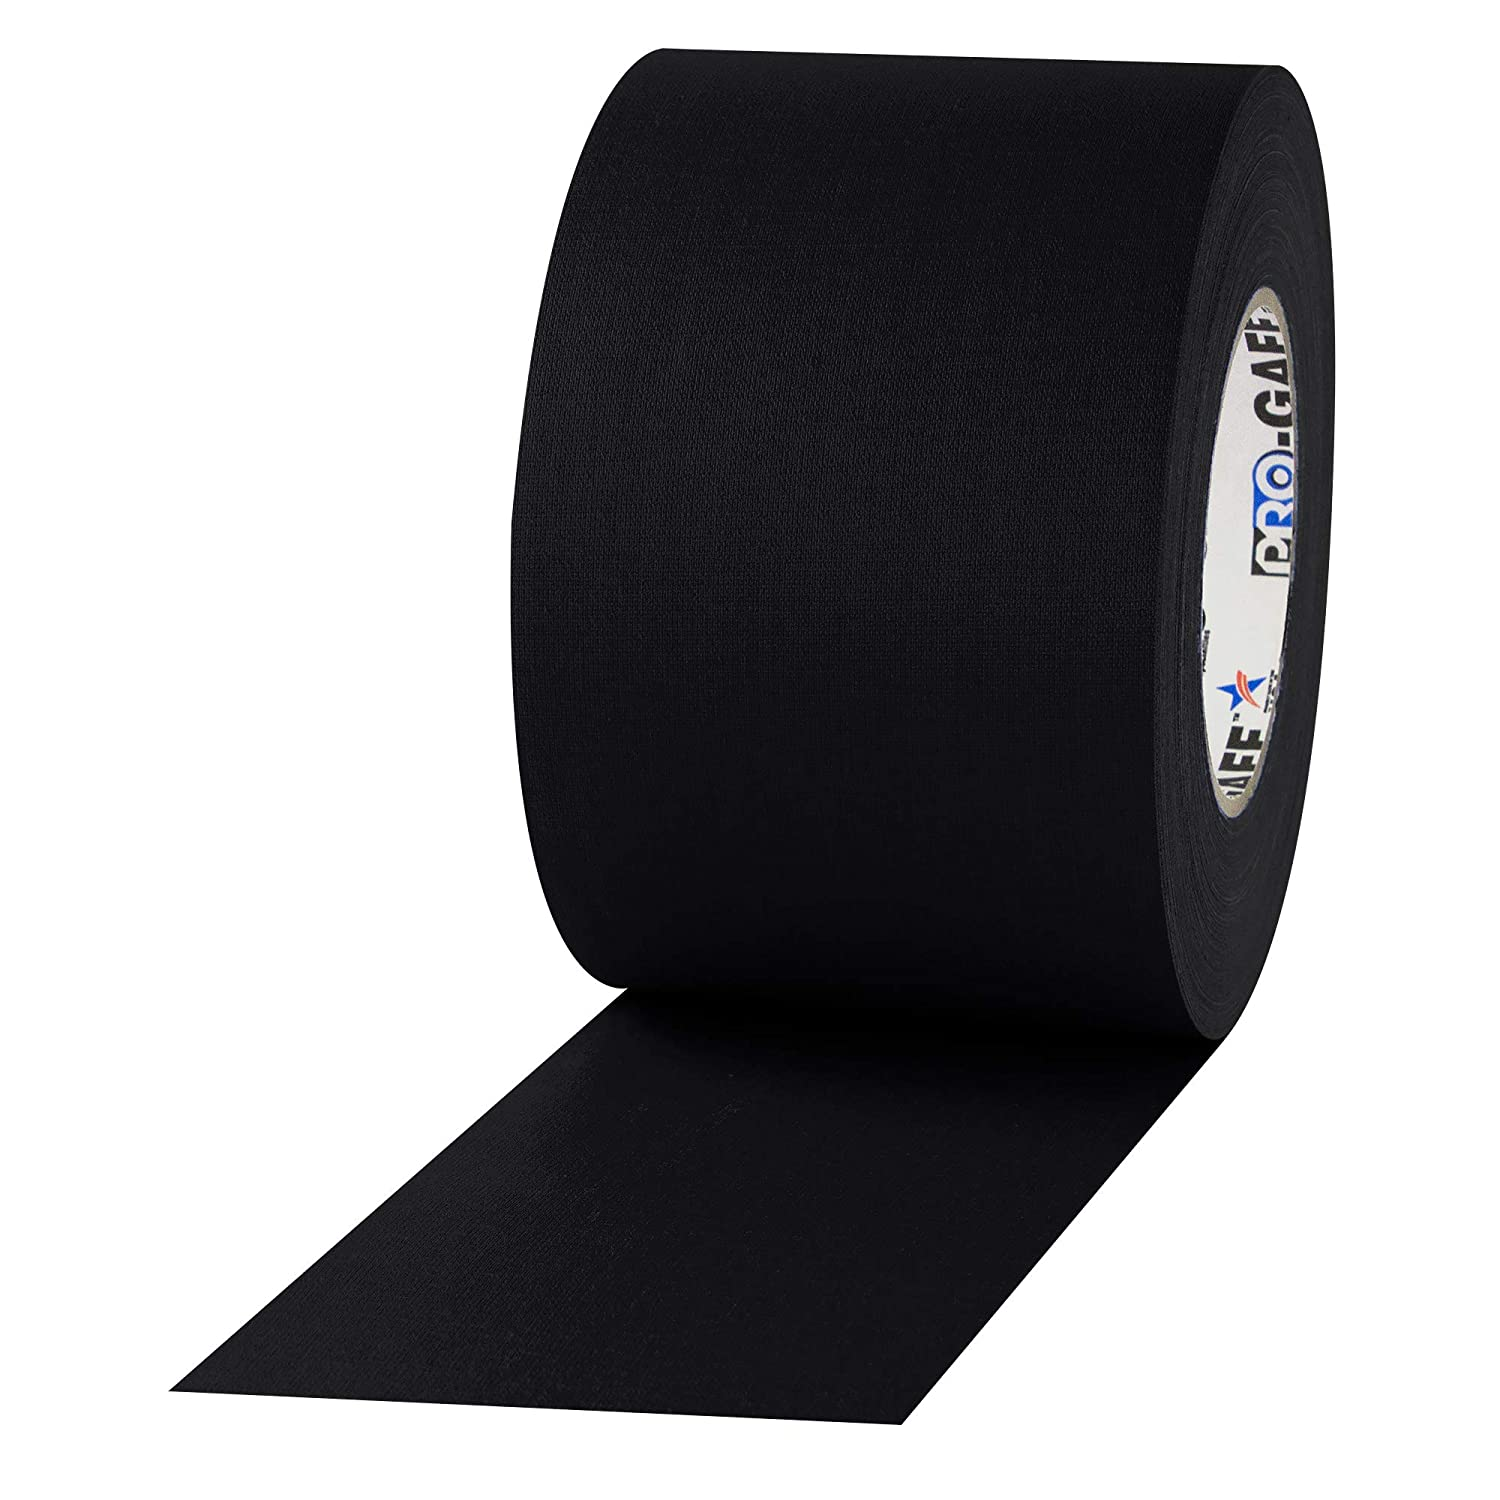 3 Width 55 yds Length Grey Pack of 1 ProTapes Pro Gaff Premium Matte Cloth Gaffers Tape With Rubber Adhesive 11 mils Thick